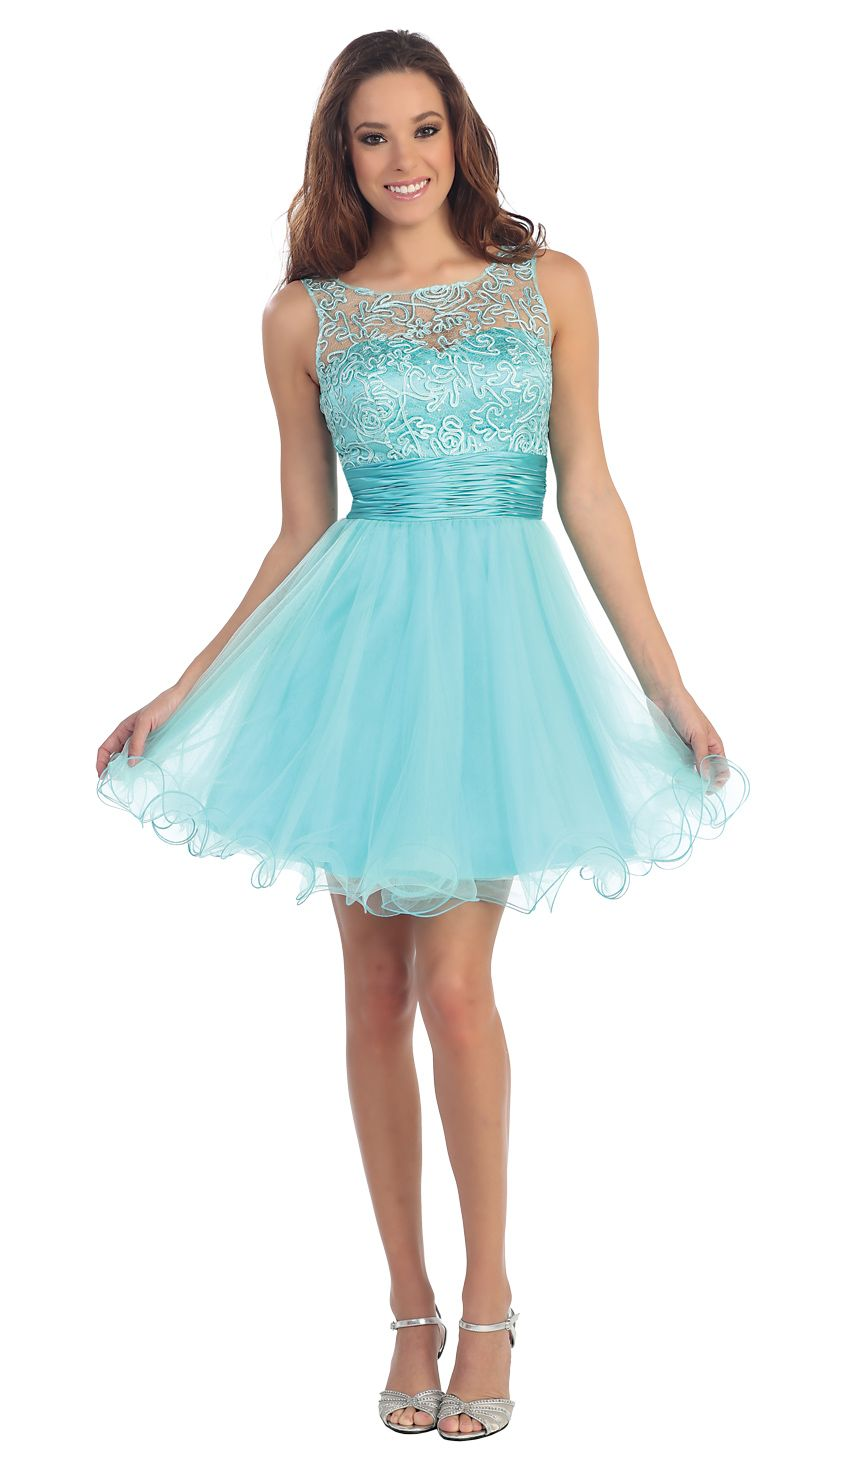 Patterned Sheer Neckline Tulle Short Party Prom Dress. Beautiful and ...